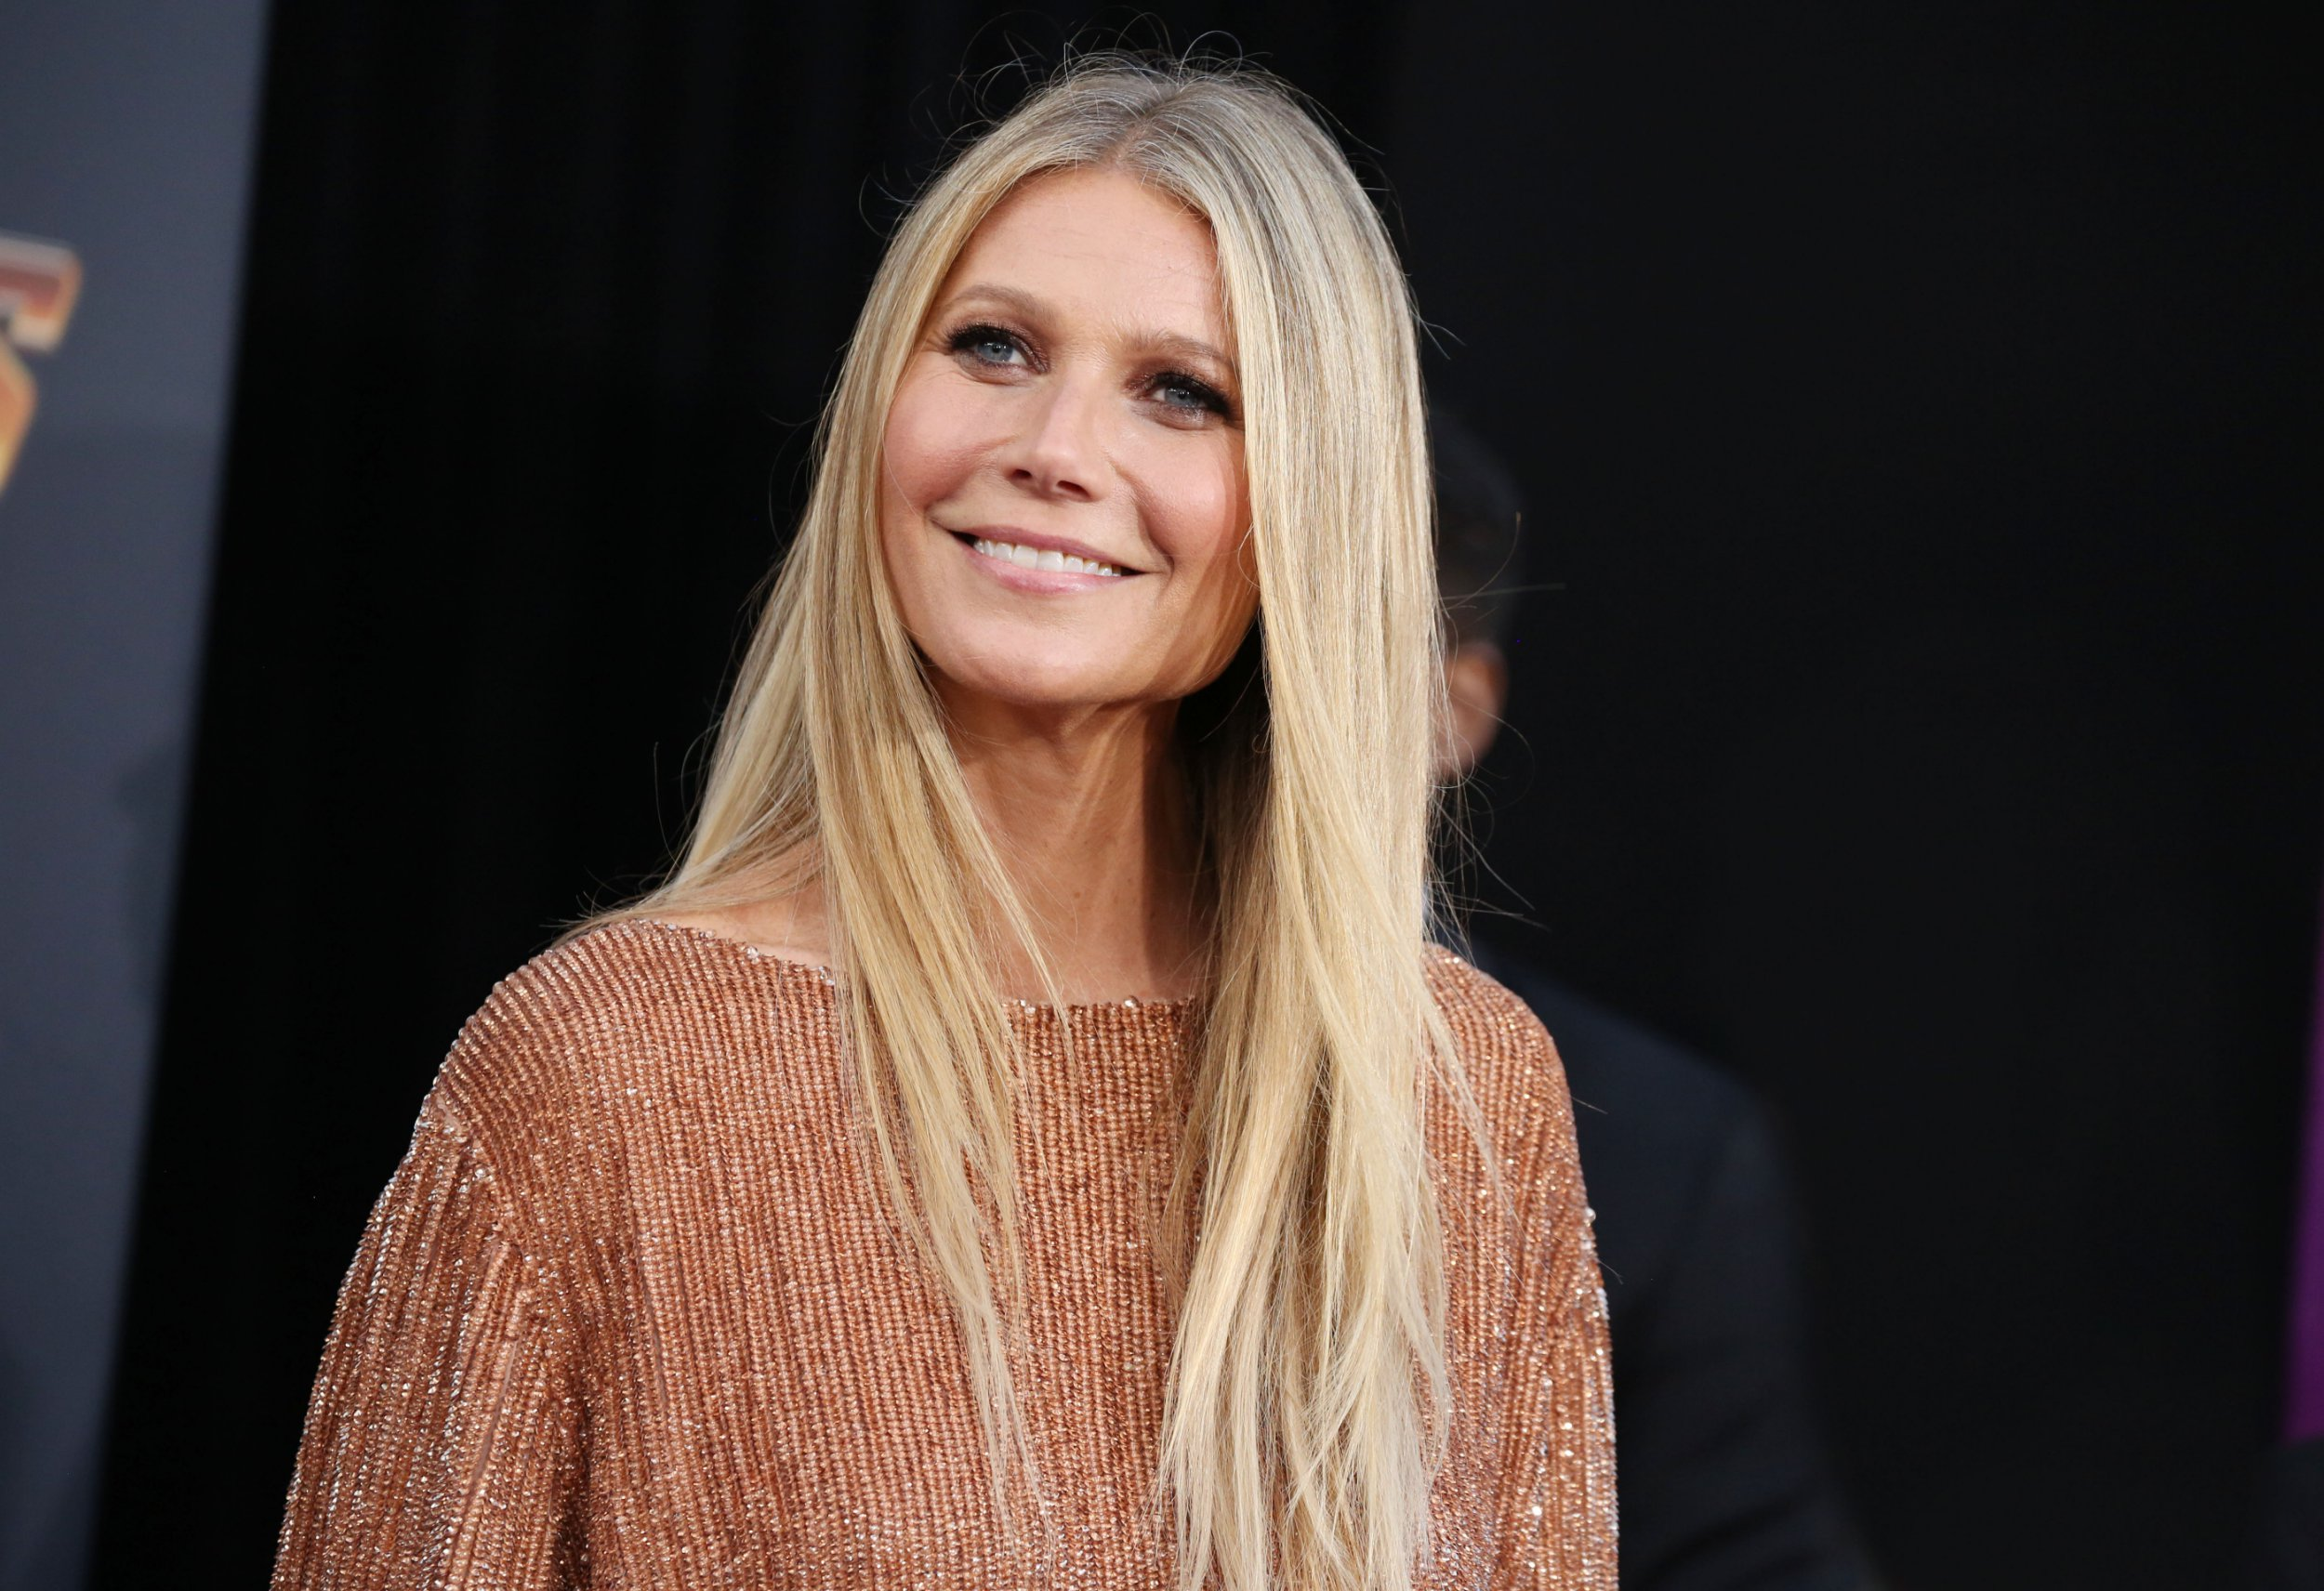 Gwyneth Paltrow says backlash to her 'conscious uncoupling' statement after Chris Martin split was 'brutal'